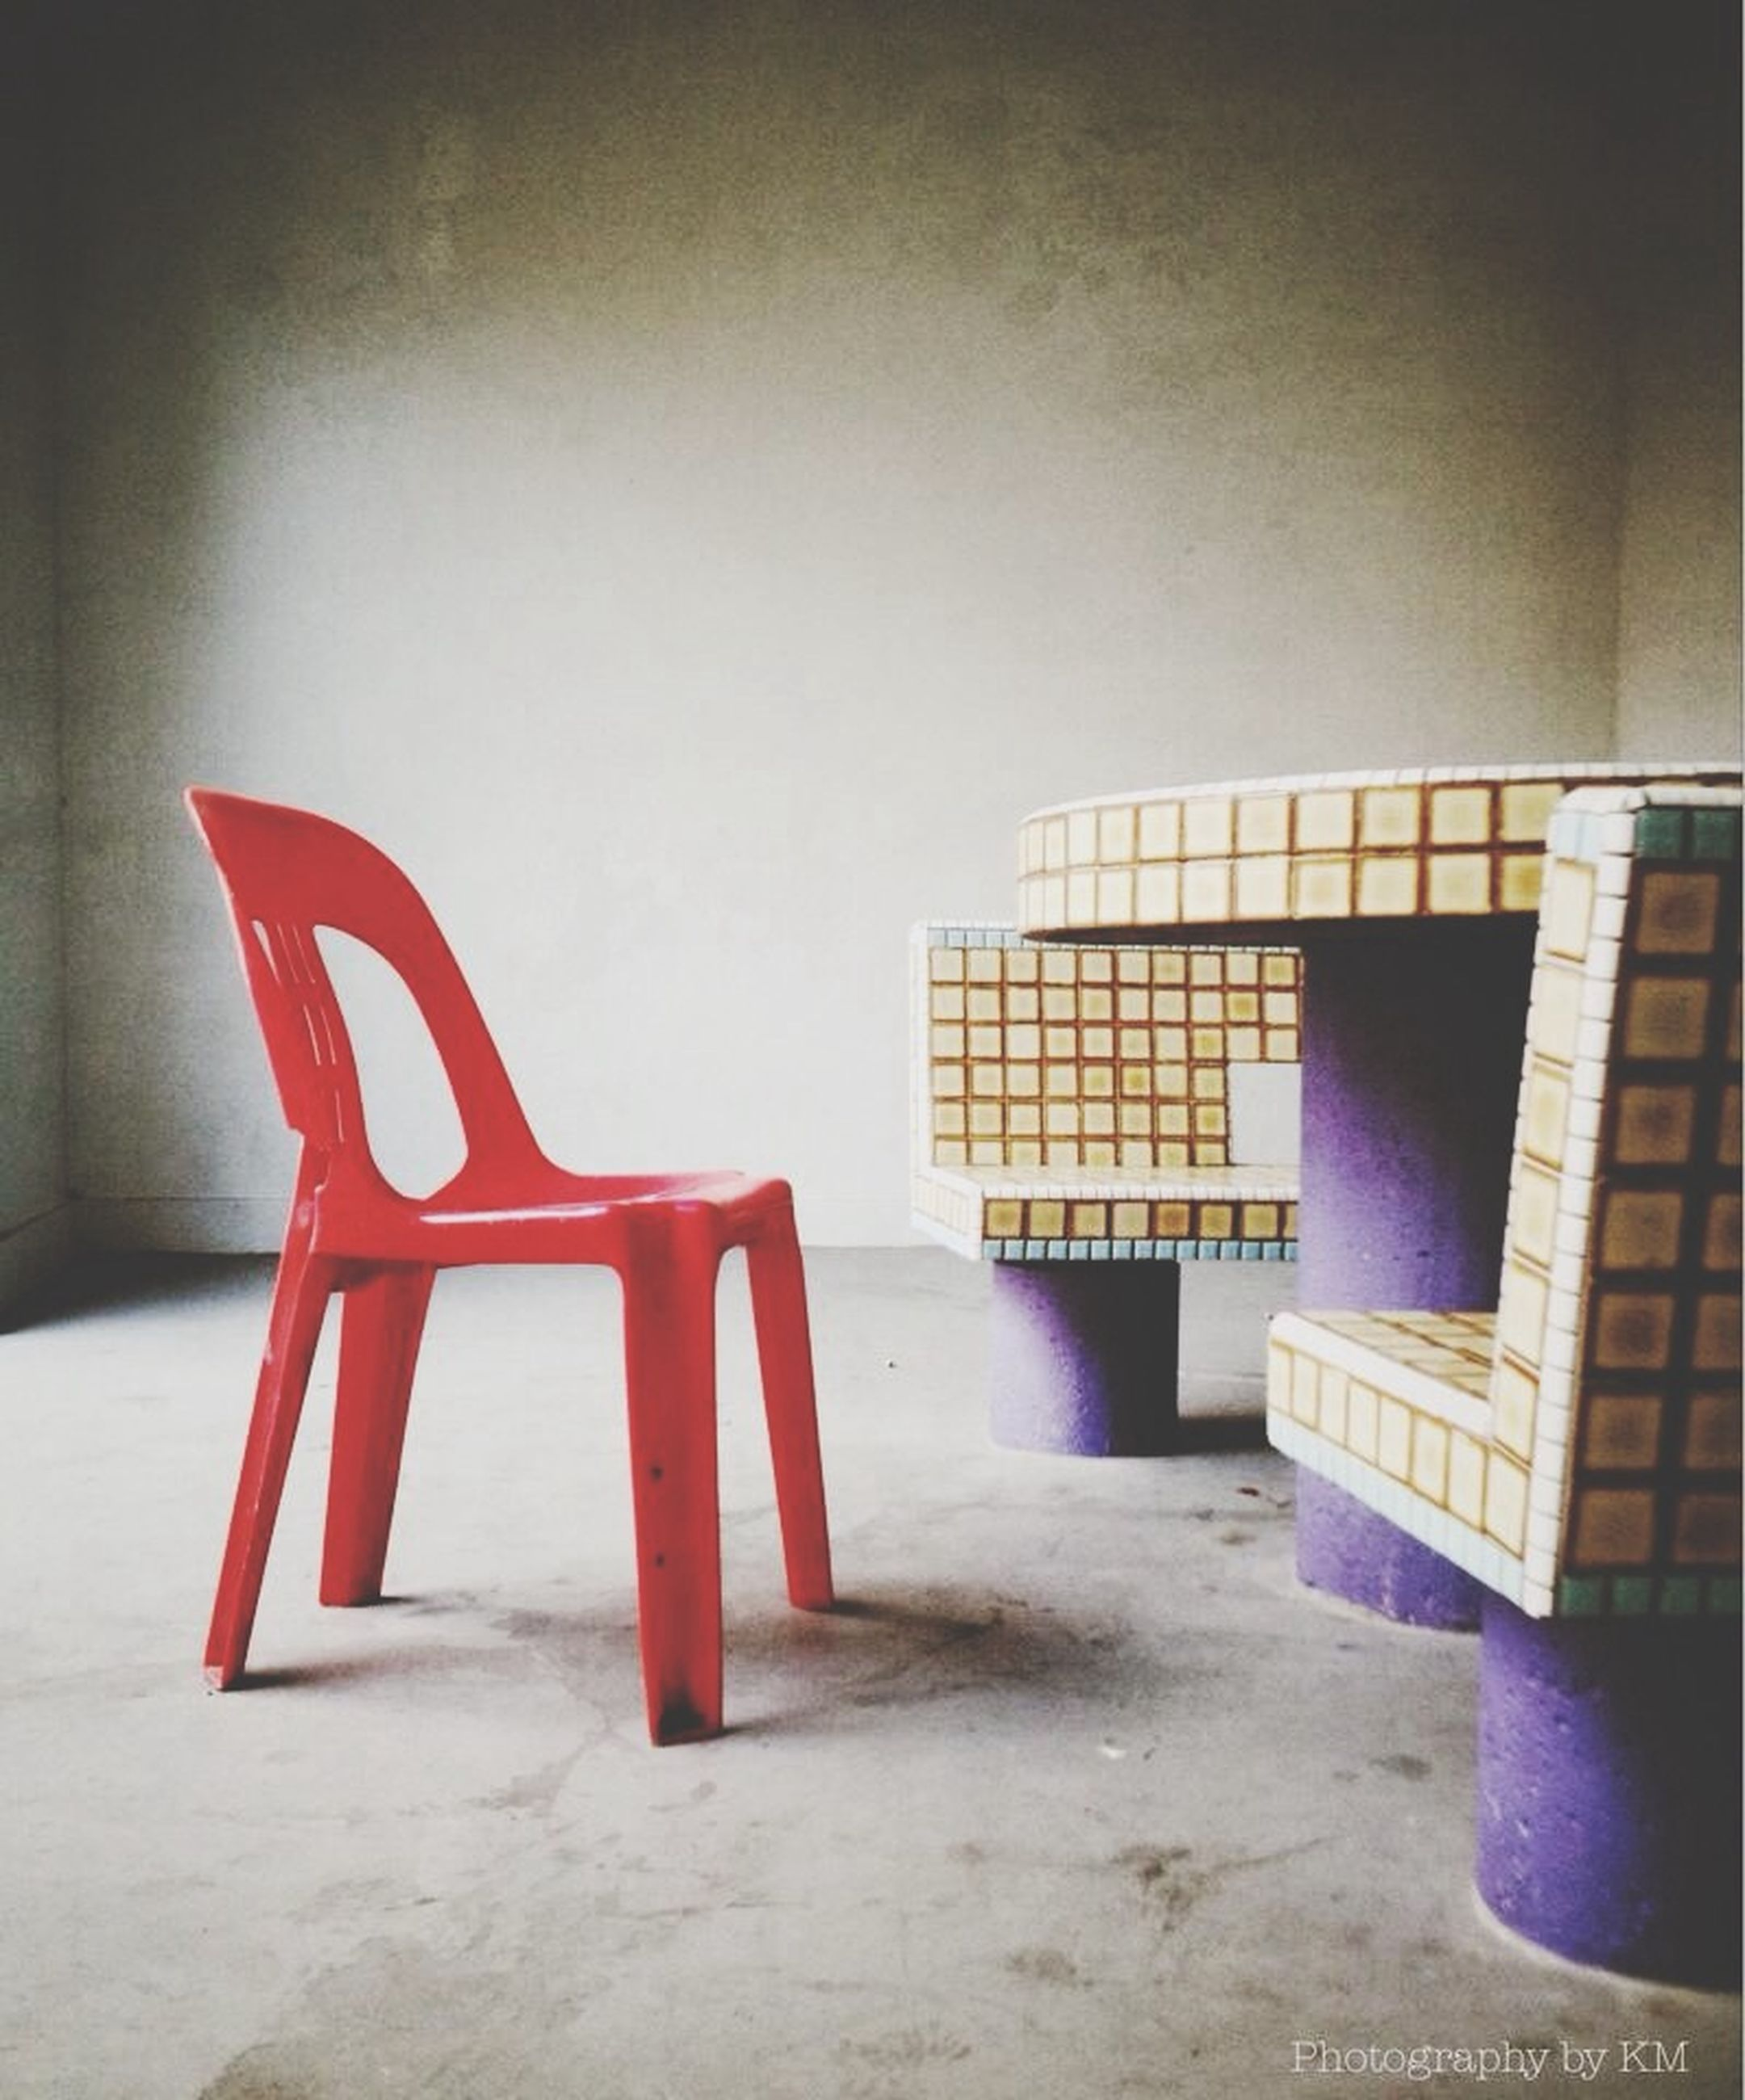 architecture, built structure, absence, empty, chair, indoors, building exterior, wall - building feature, red, wall, window, house, copy space, day, home interior, no people, sunlight, table, auto post production filter, bench